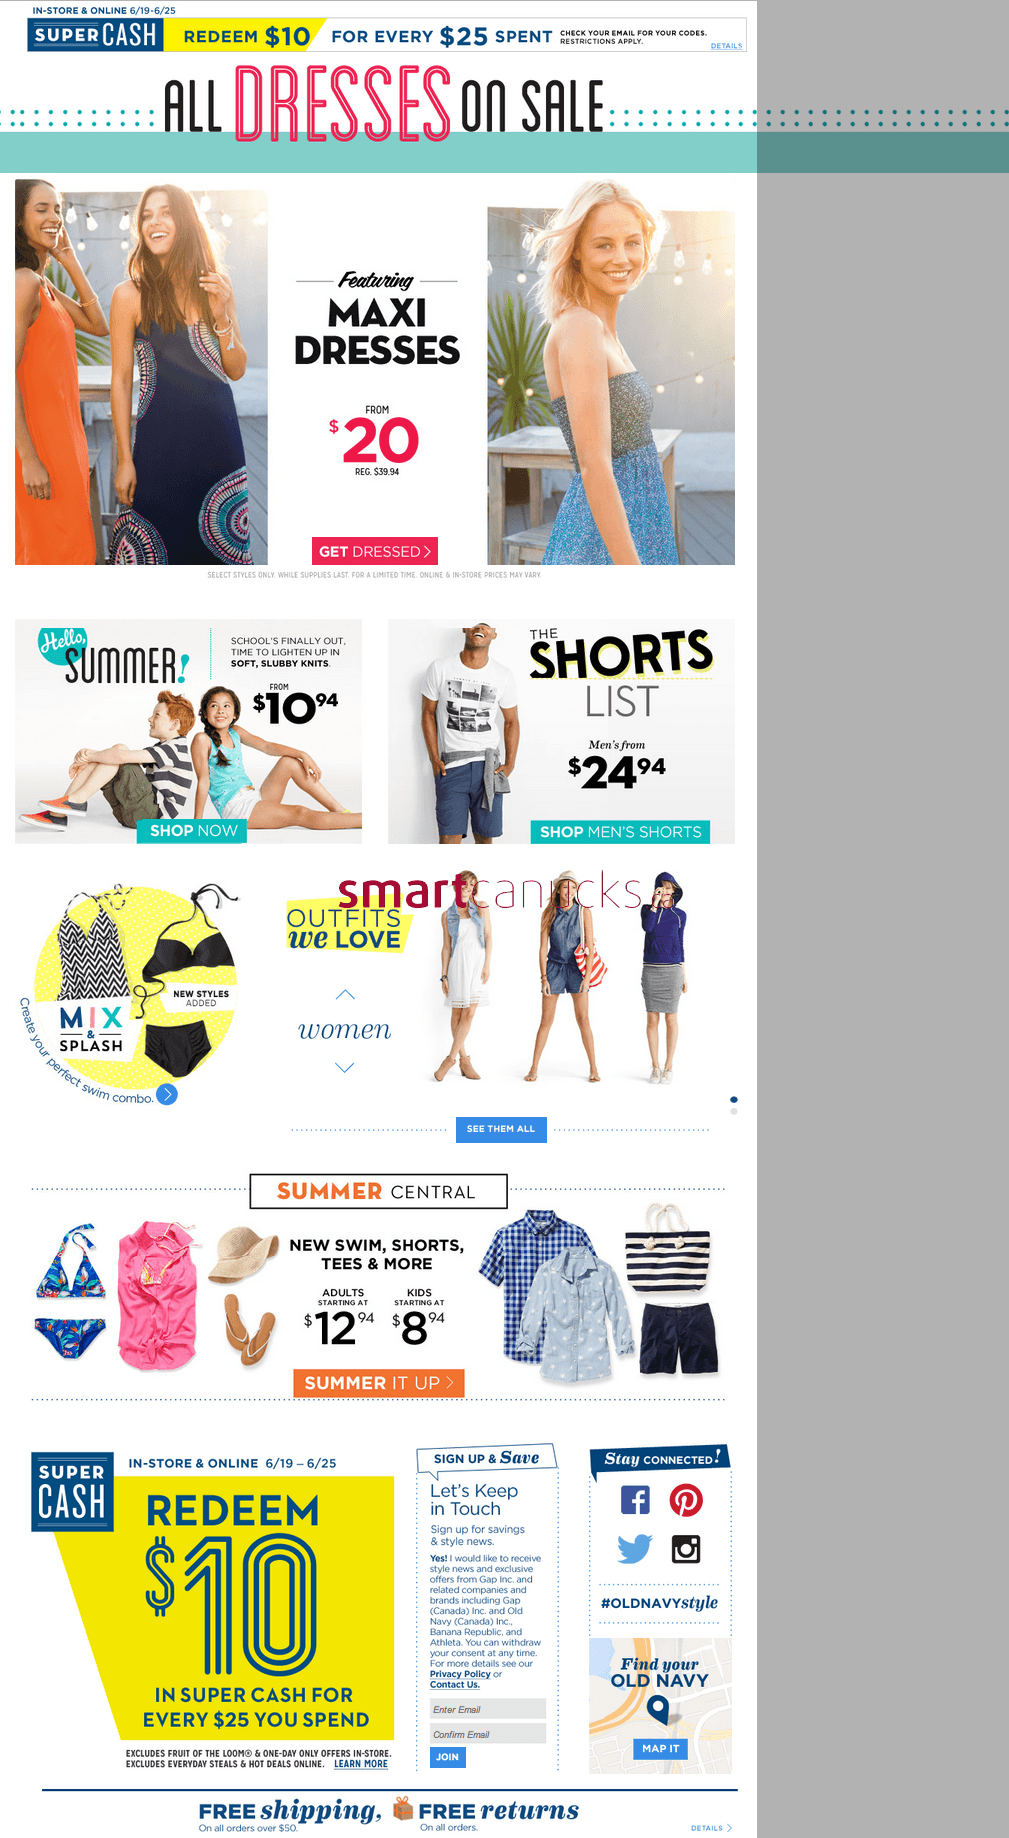 Current Old Navy sales ad, best deals, and promotions. How to save with Old Navy amazing sales – check the best deals and choose which items you would like to purchase. The retailer sells: clothing and accessories for women, men, and kids.